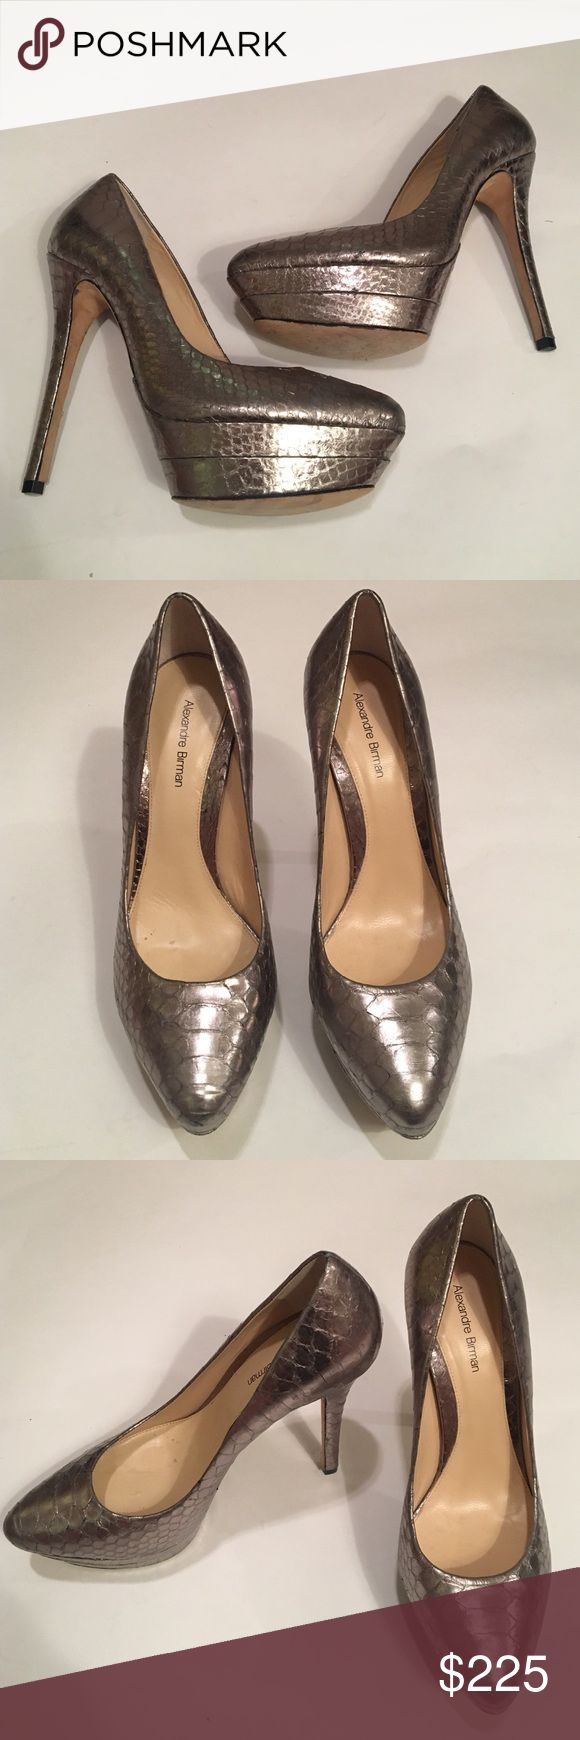 Alexandre Birman Metallic Pumps size 8 These are perfect for your New Years outfit! Size 8, worn once. In amazing condition and are sure to impress 👍 Alexandre Birman  Shoes Heels